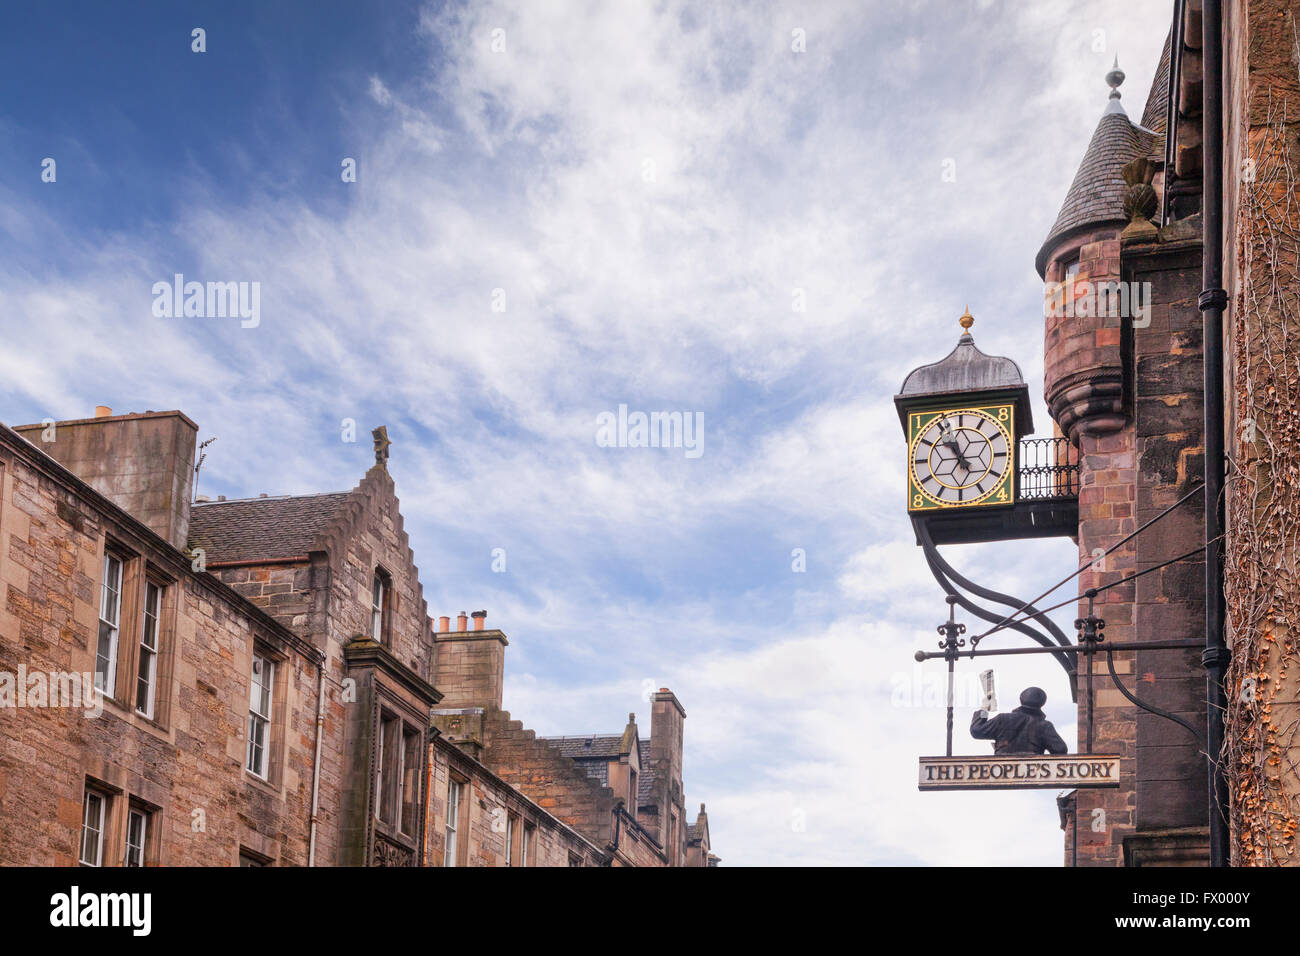 Royal Mile skyline, and the clock at the Tolbooth Tavern, in the Old Town, Edinburgh, Scotland, UK - Stock Image